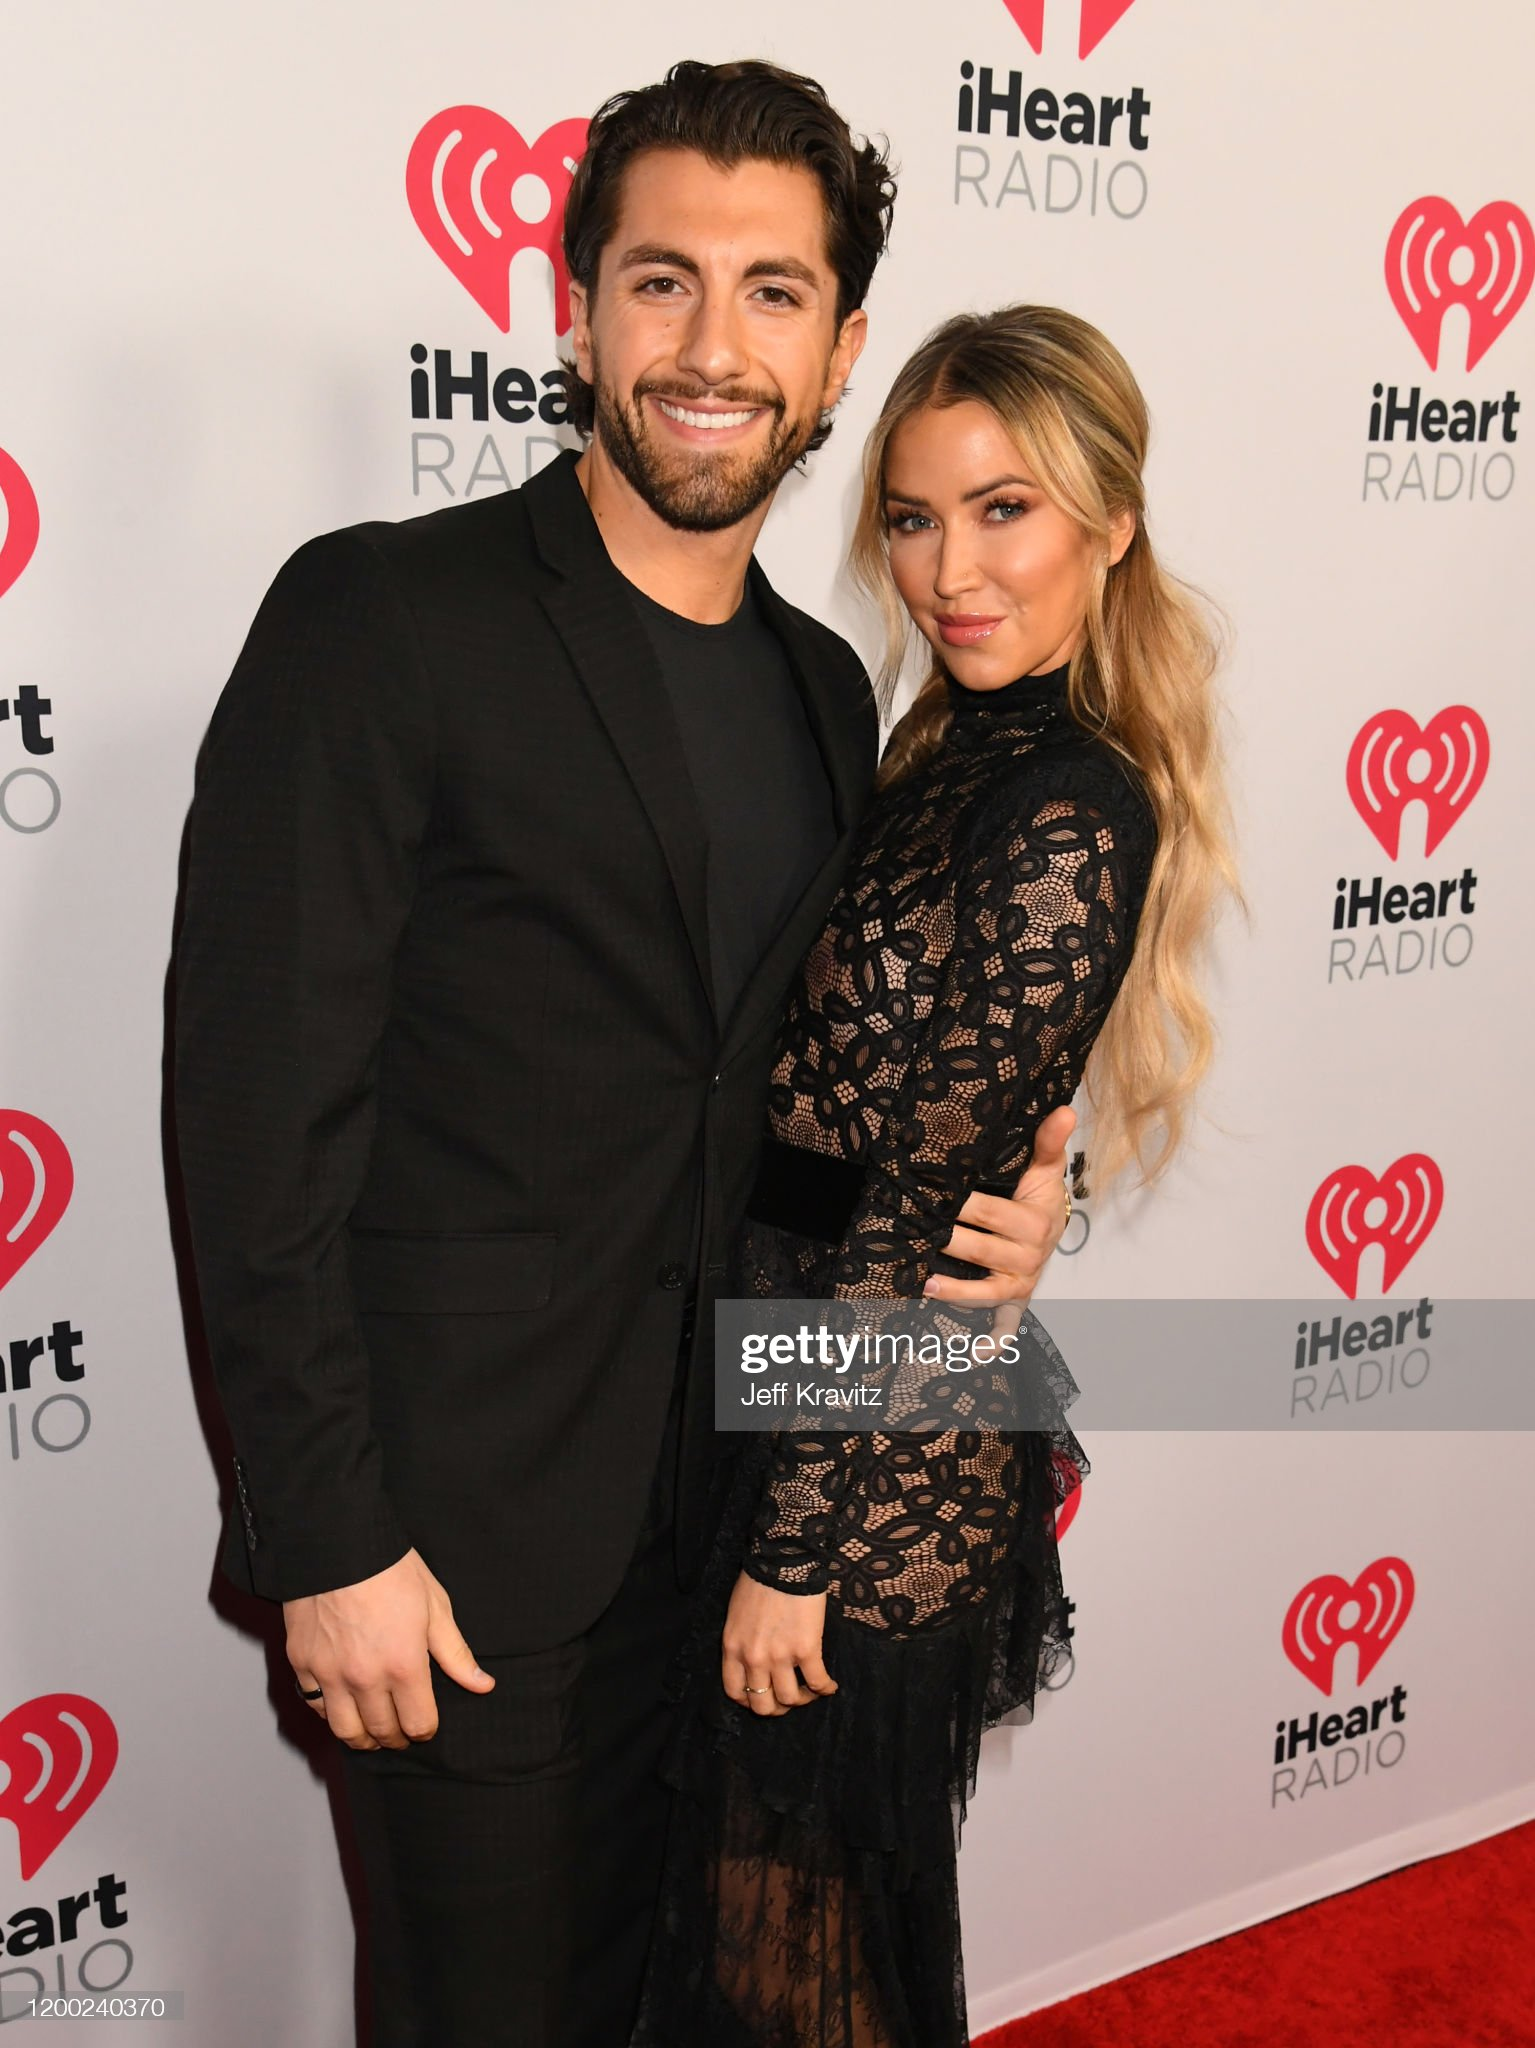 Kaitlyn Bristowe - Jason Tartick - FAN Forum - Discussion  - Page 51 Jason-tartick-and-kaitlyn-bristowe-attend-the-2020-iheartradio-at-picture-id1200240370?s=2048x2048